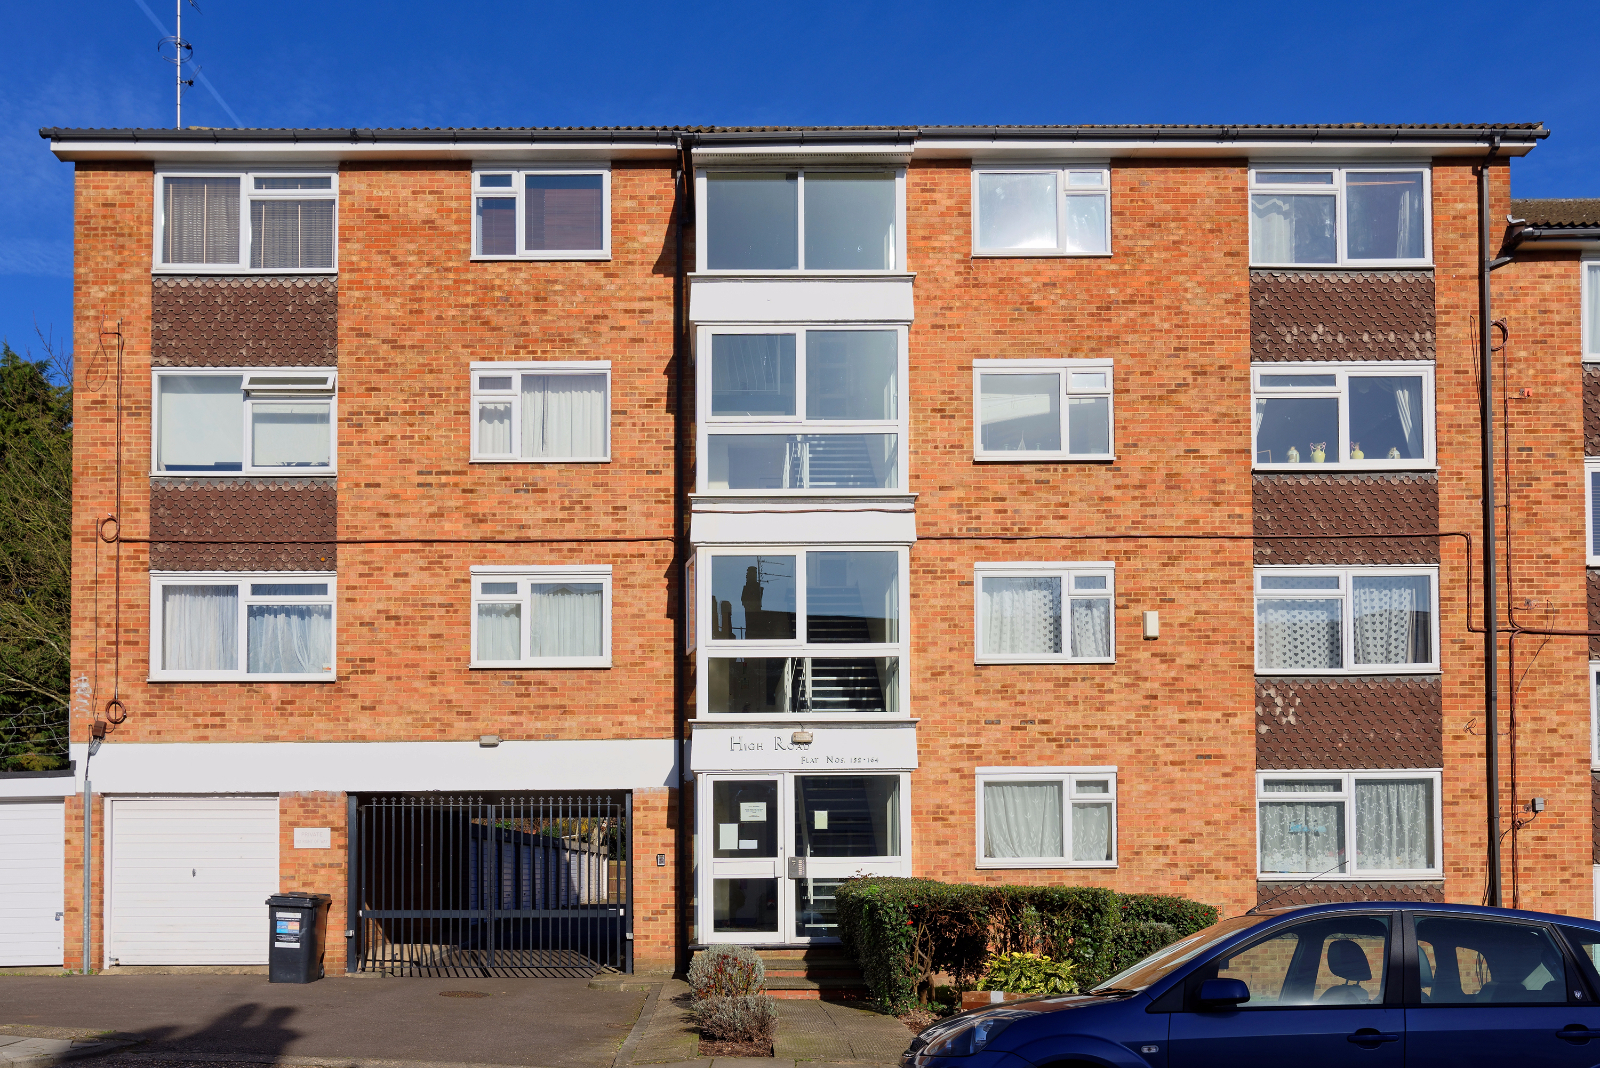 2 Bedroom Flat For Sale In High Road New Southgate N11 London